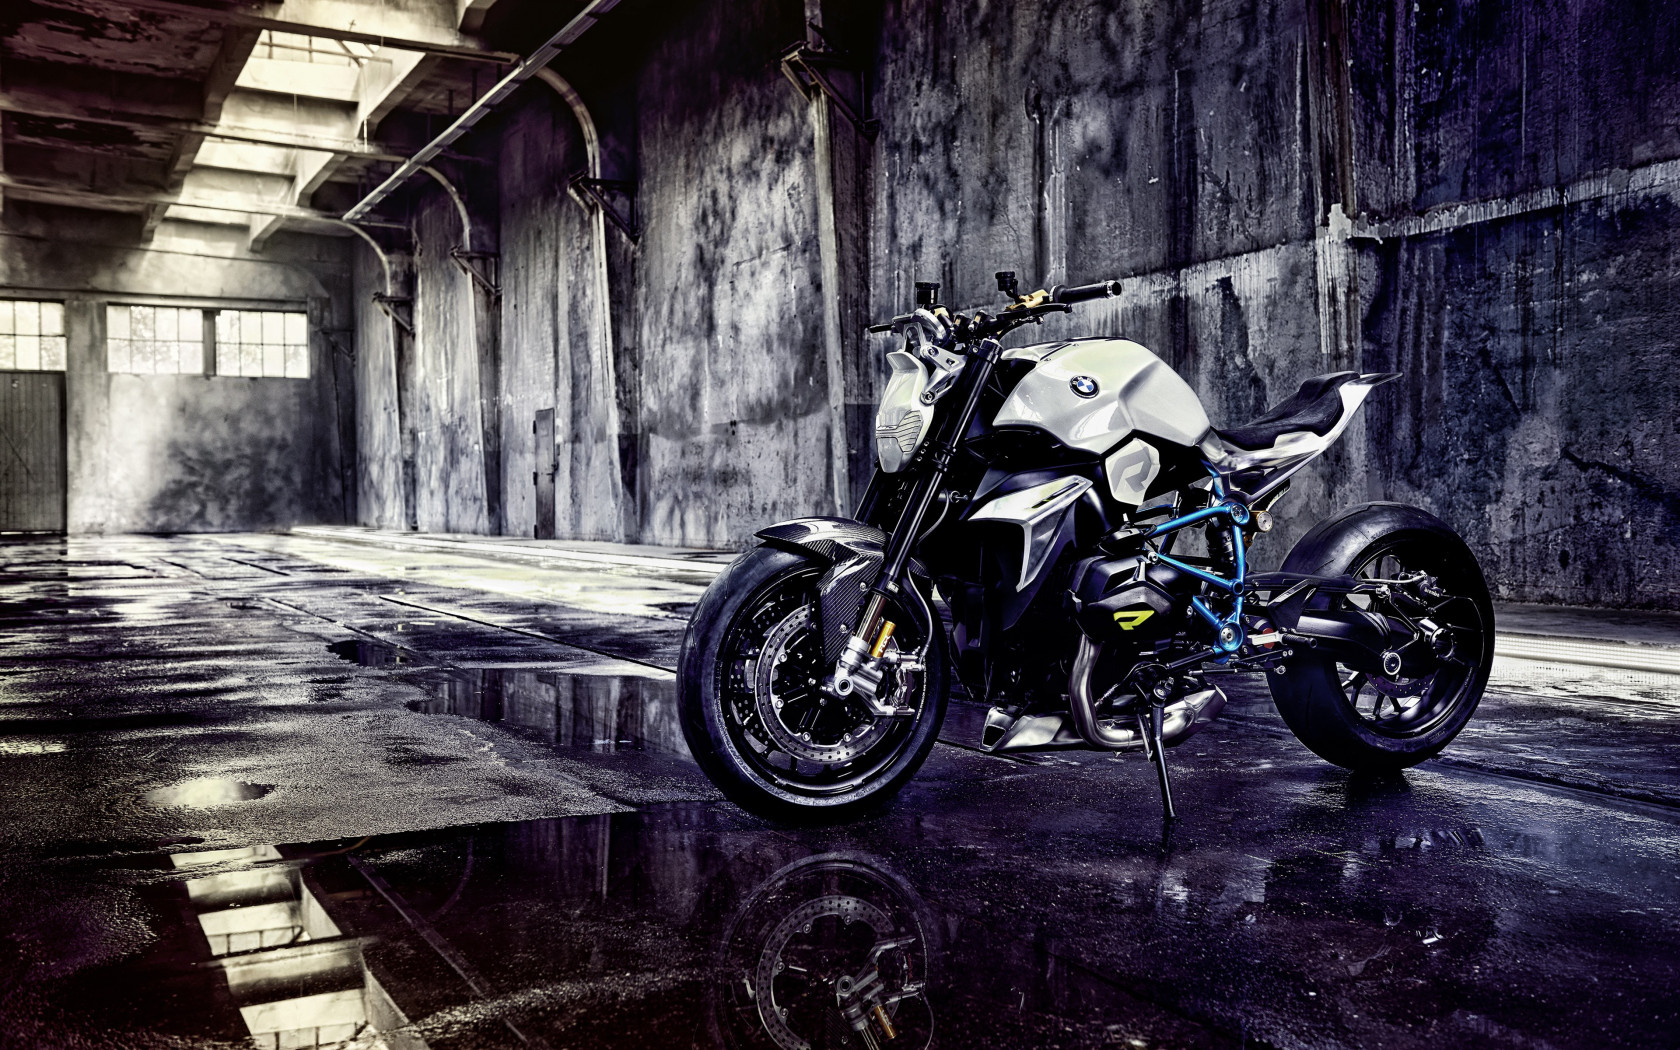 BMW Concept Roadster Motorcycle wallpaper 1680x1050